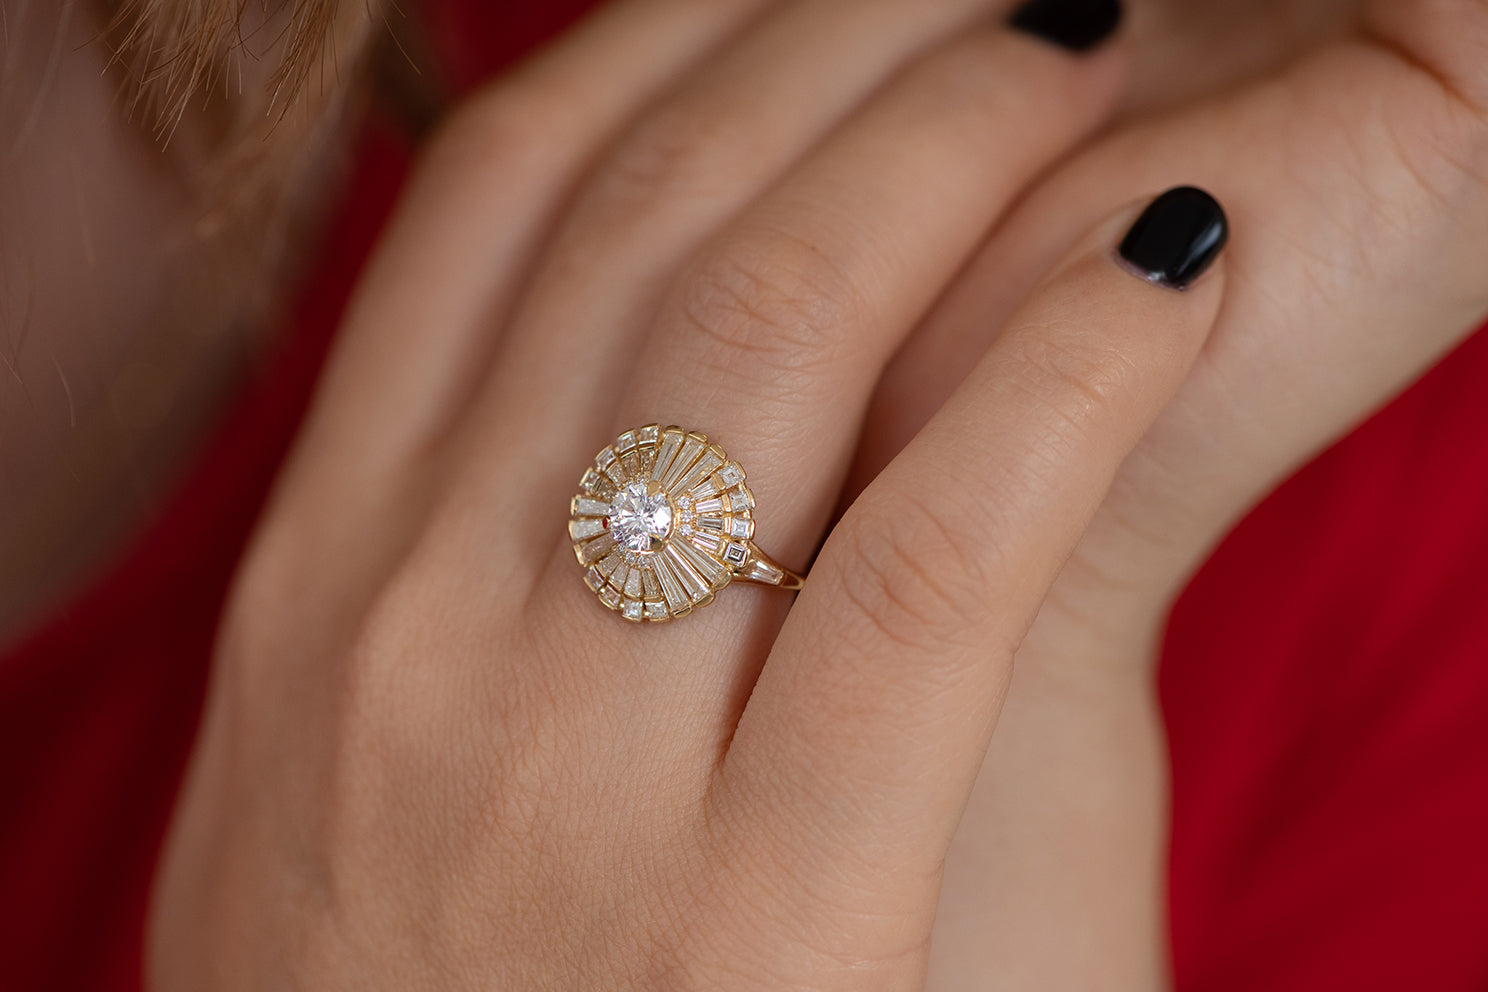 Diamond Snowflake Ring with Tapered Baguette Diamonds on Hand Other Detail Shot